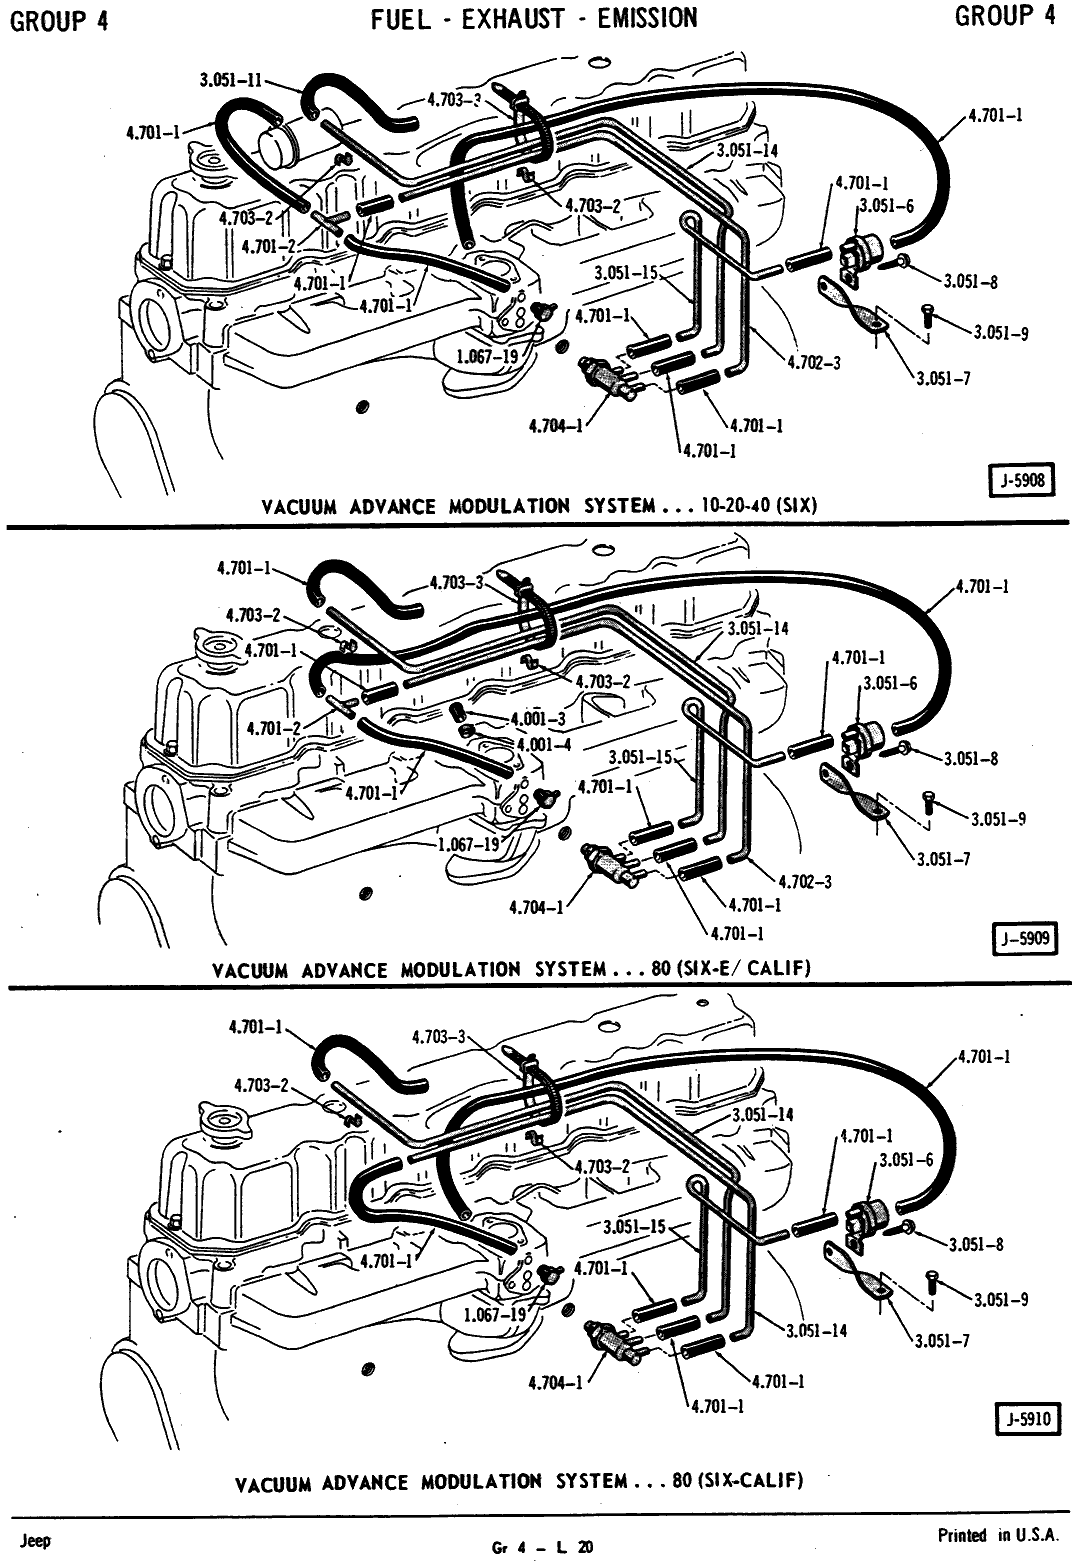 2001 Jeep Wrangler Engine Diagram Wiring Diagram System Chip Norm A Chip Norm A Ediliadesign It